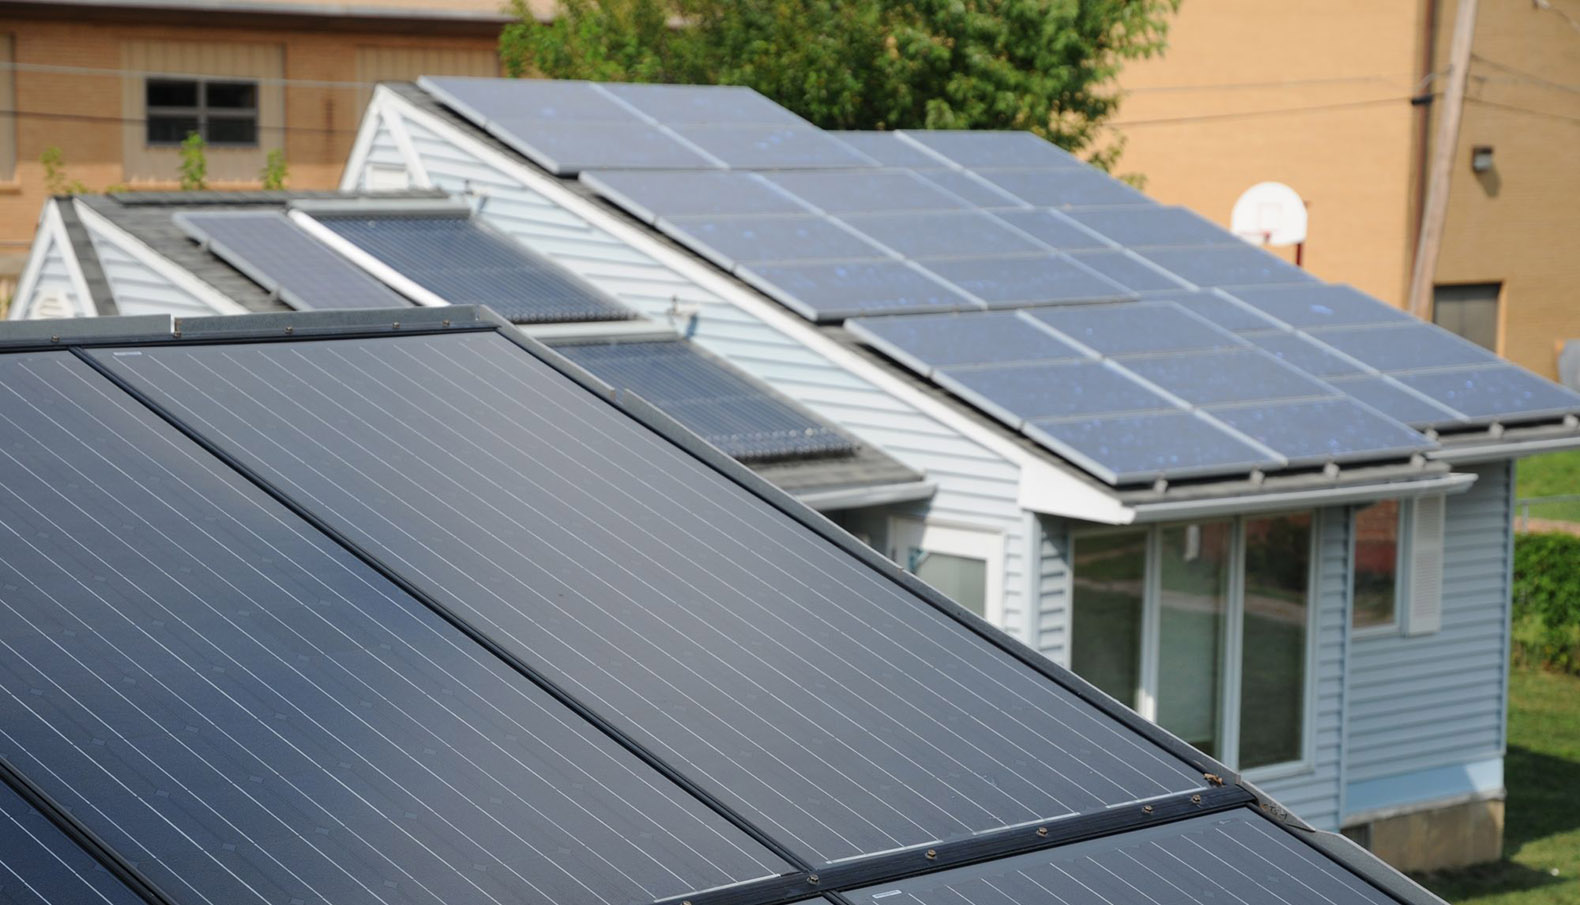 Solarcity Solar Panels >> Elon Musk Is Developing A Roof Made Entirely Out Of Solar Panels